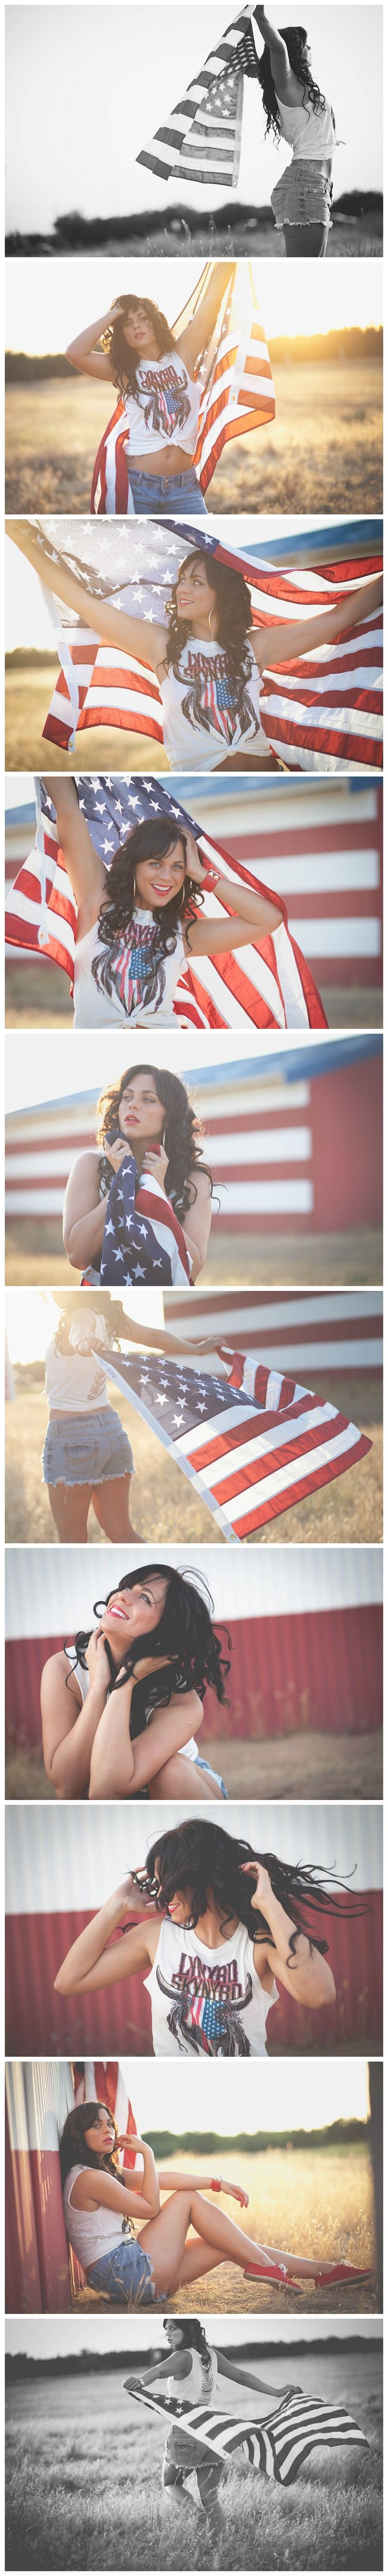 Definitely have to make sure the flag doesn't touch the ground... But what an amazing July shoot idea!!!